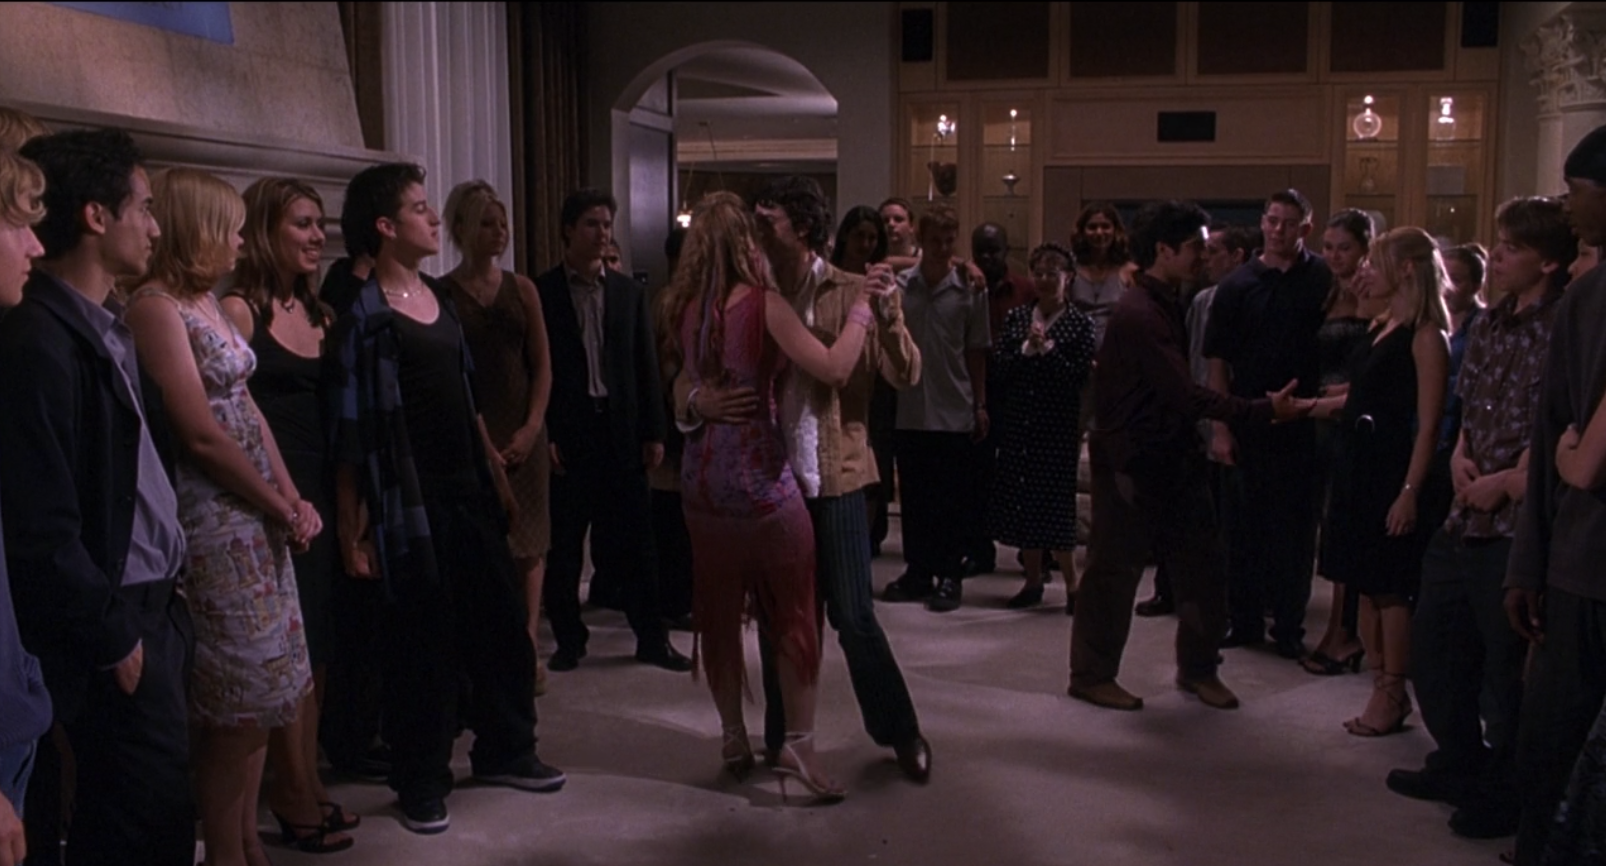 Lola and Stu Wolf slow dancing in the room of a teen party